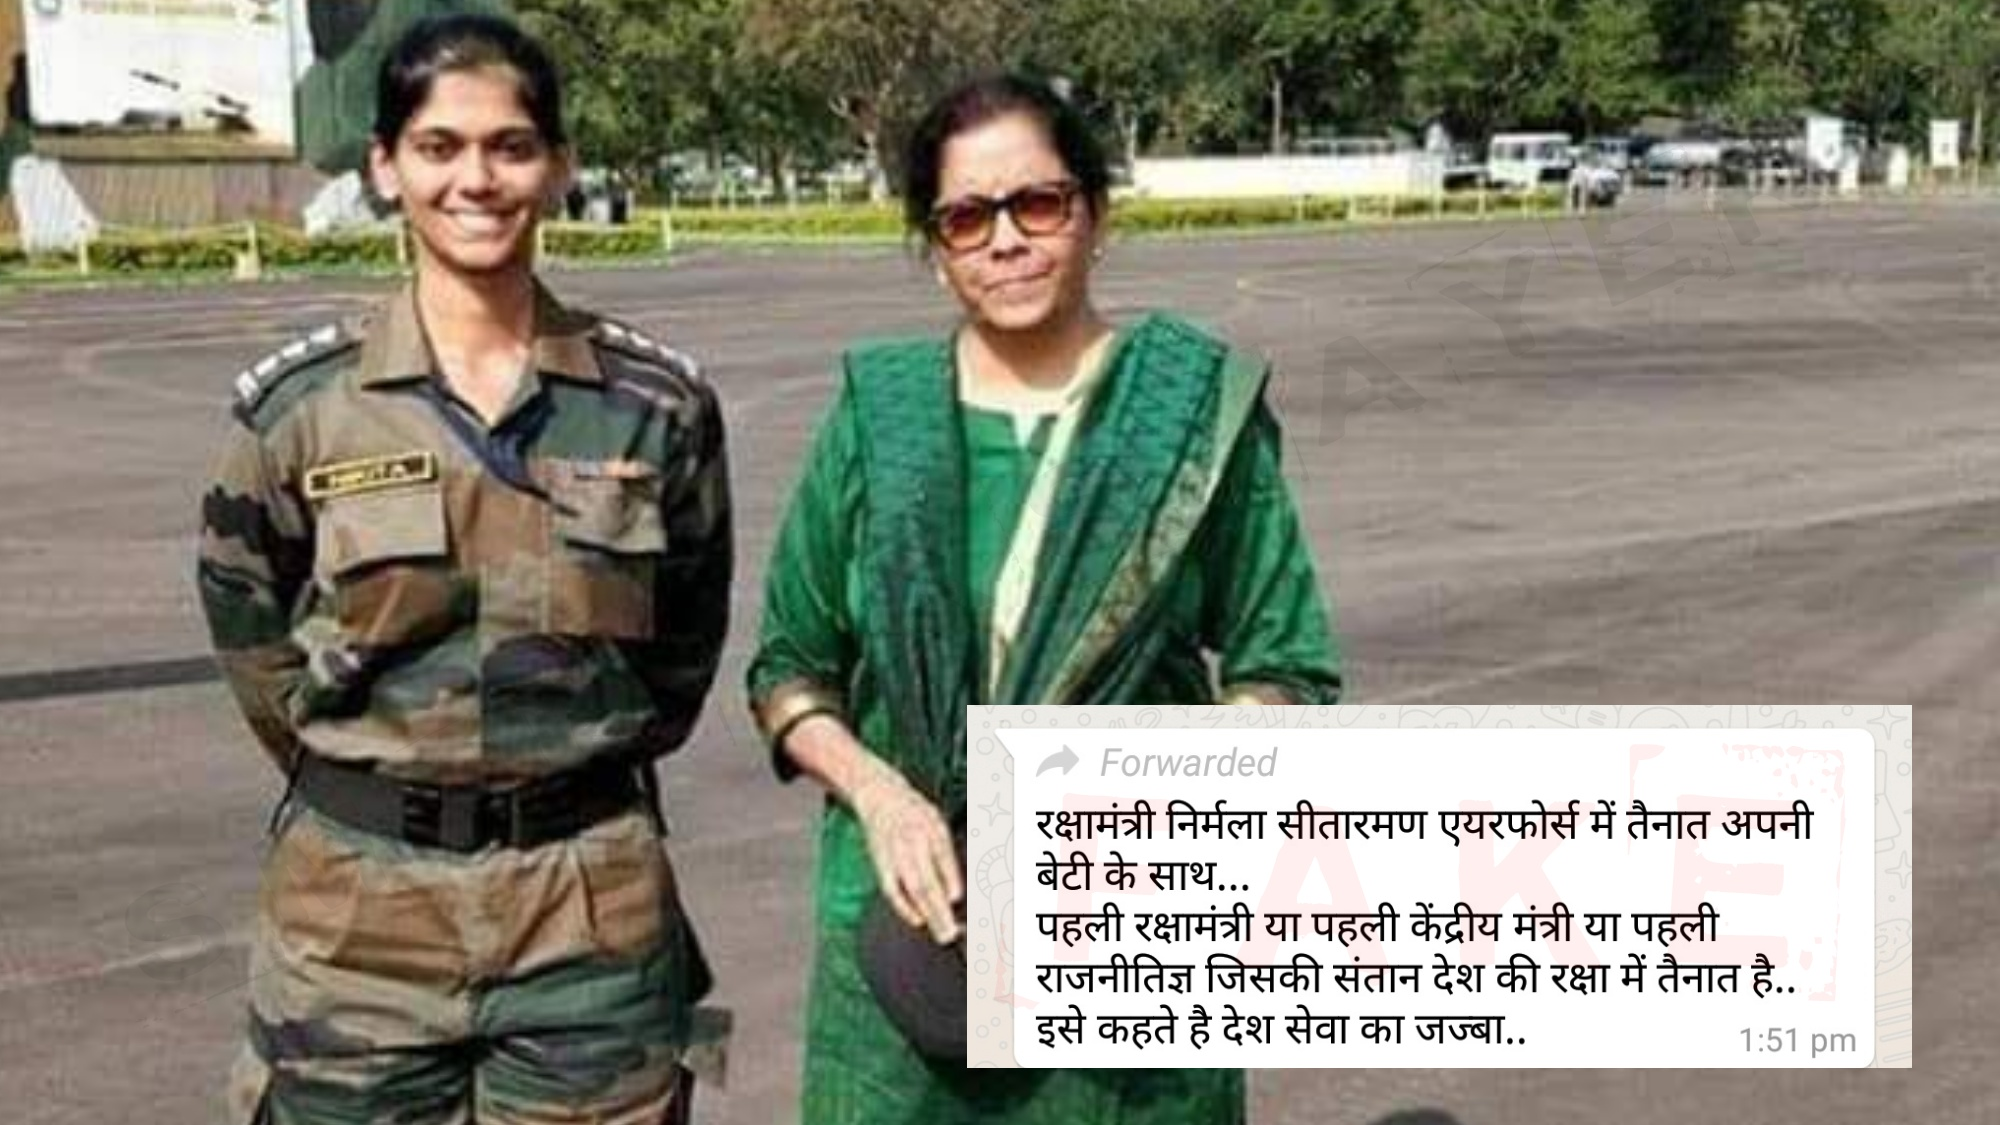 The woman standing with Defence minister is not her daughter